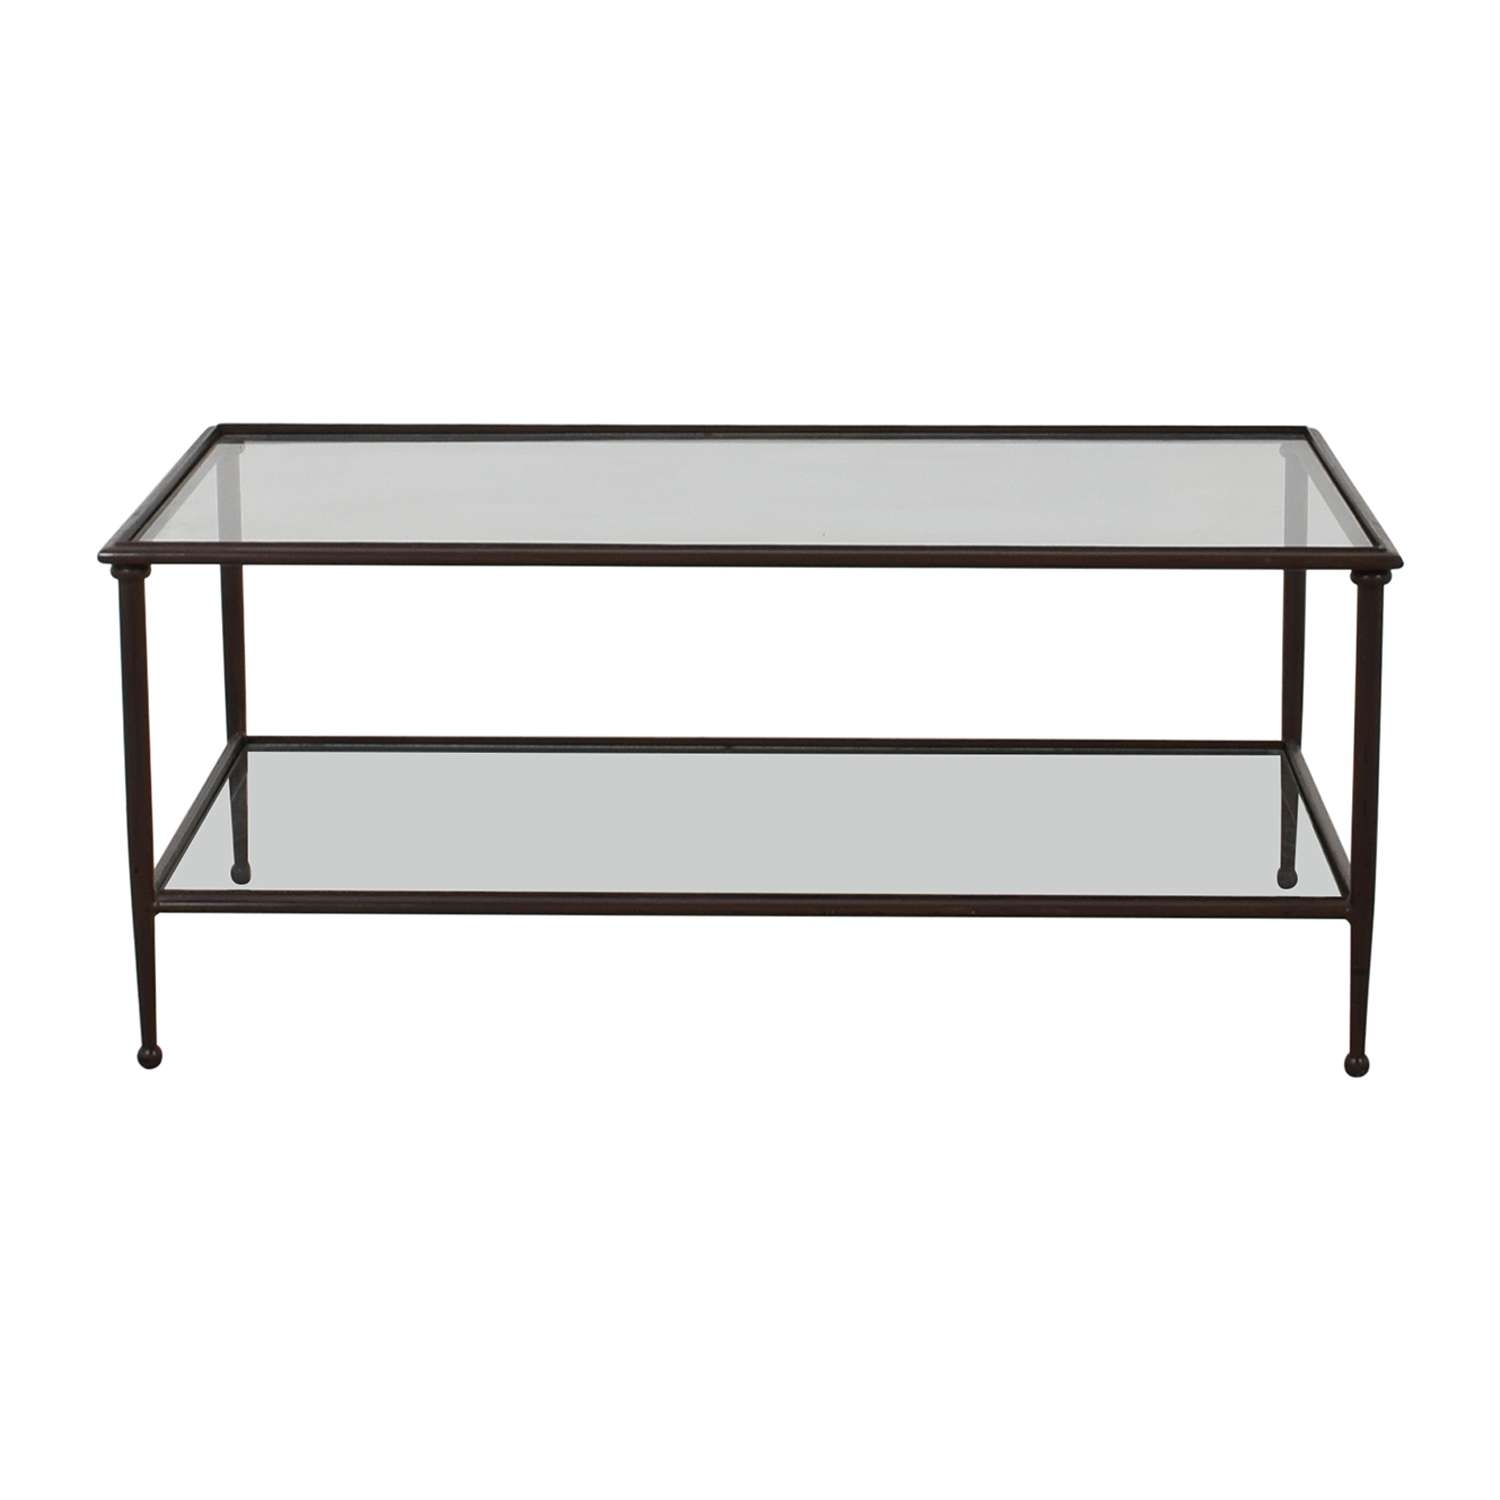 [%Best And Newest Revolving Glass Coffee Tables With 72% Off – Wood Metal Scroll And Glass Coffee Table / Tables|72% Off – Wood Metal Scroll And Glass Coffee Table / Tables Regarding Well Known Revolving Glass Coffee Tables%] (View 1 of 20)